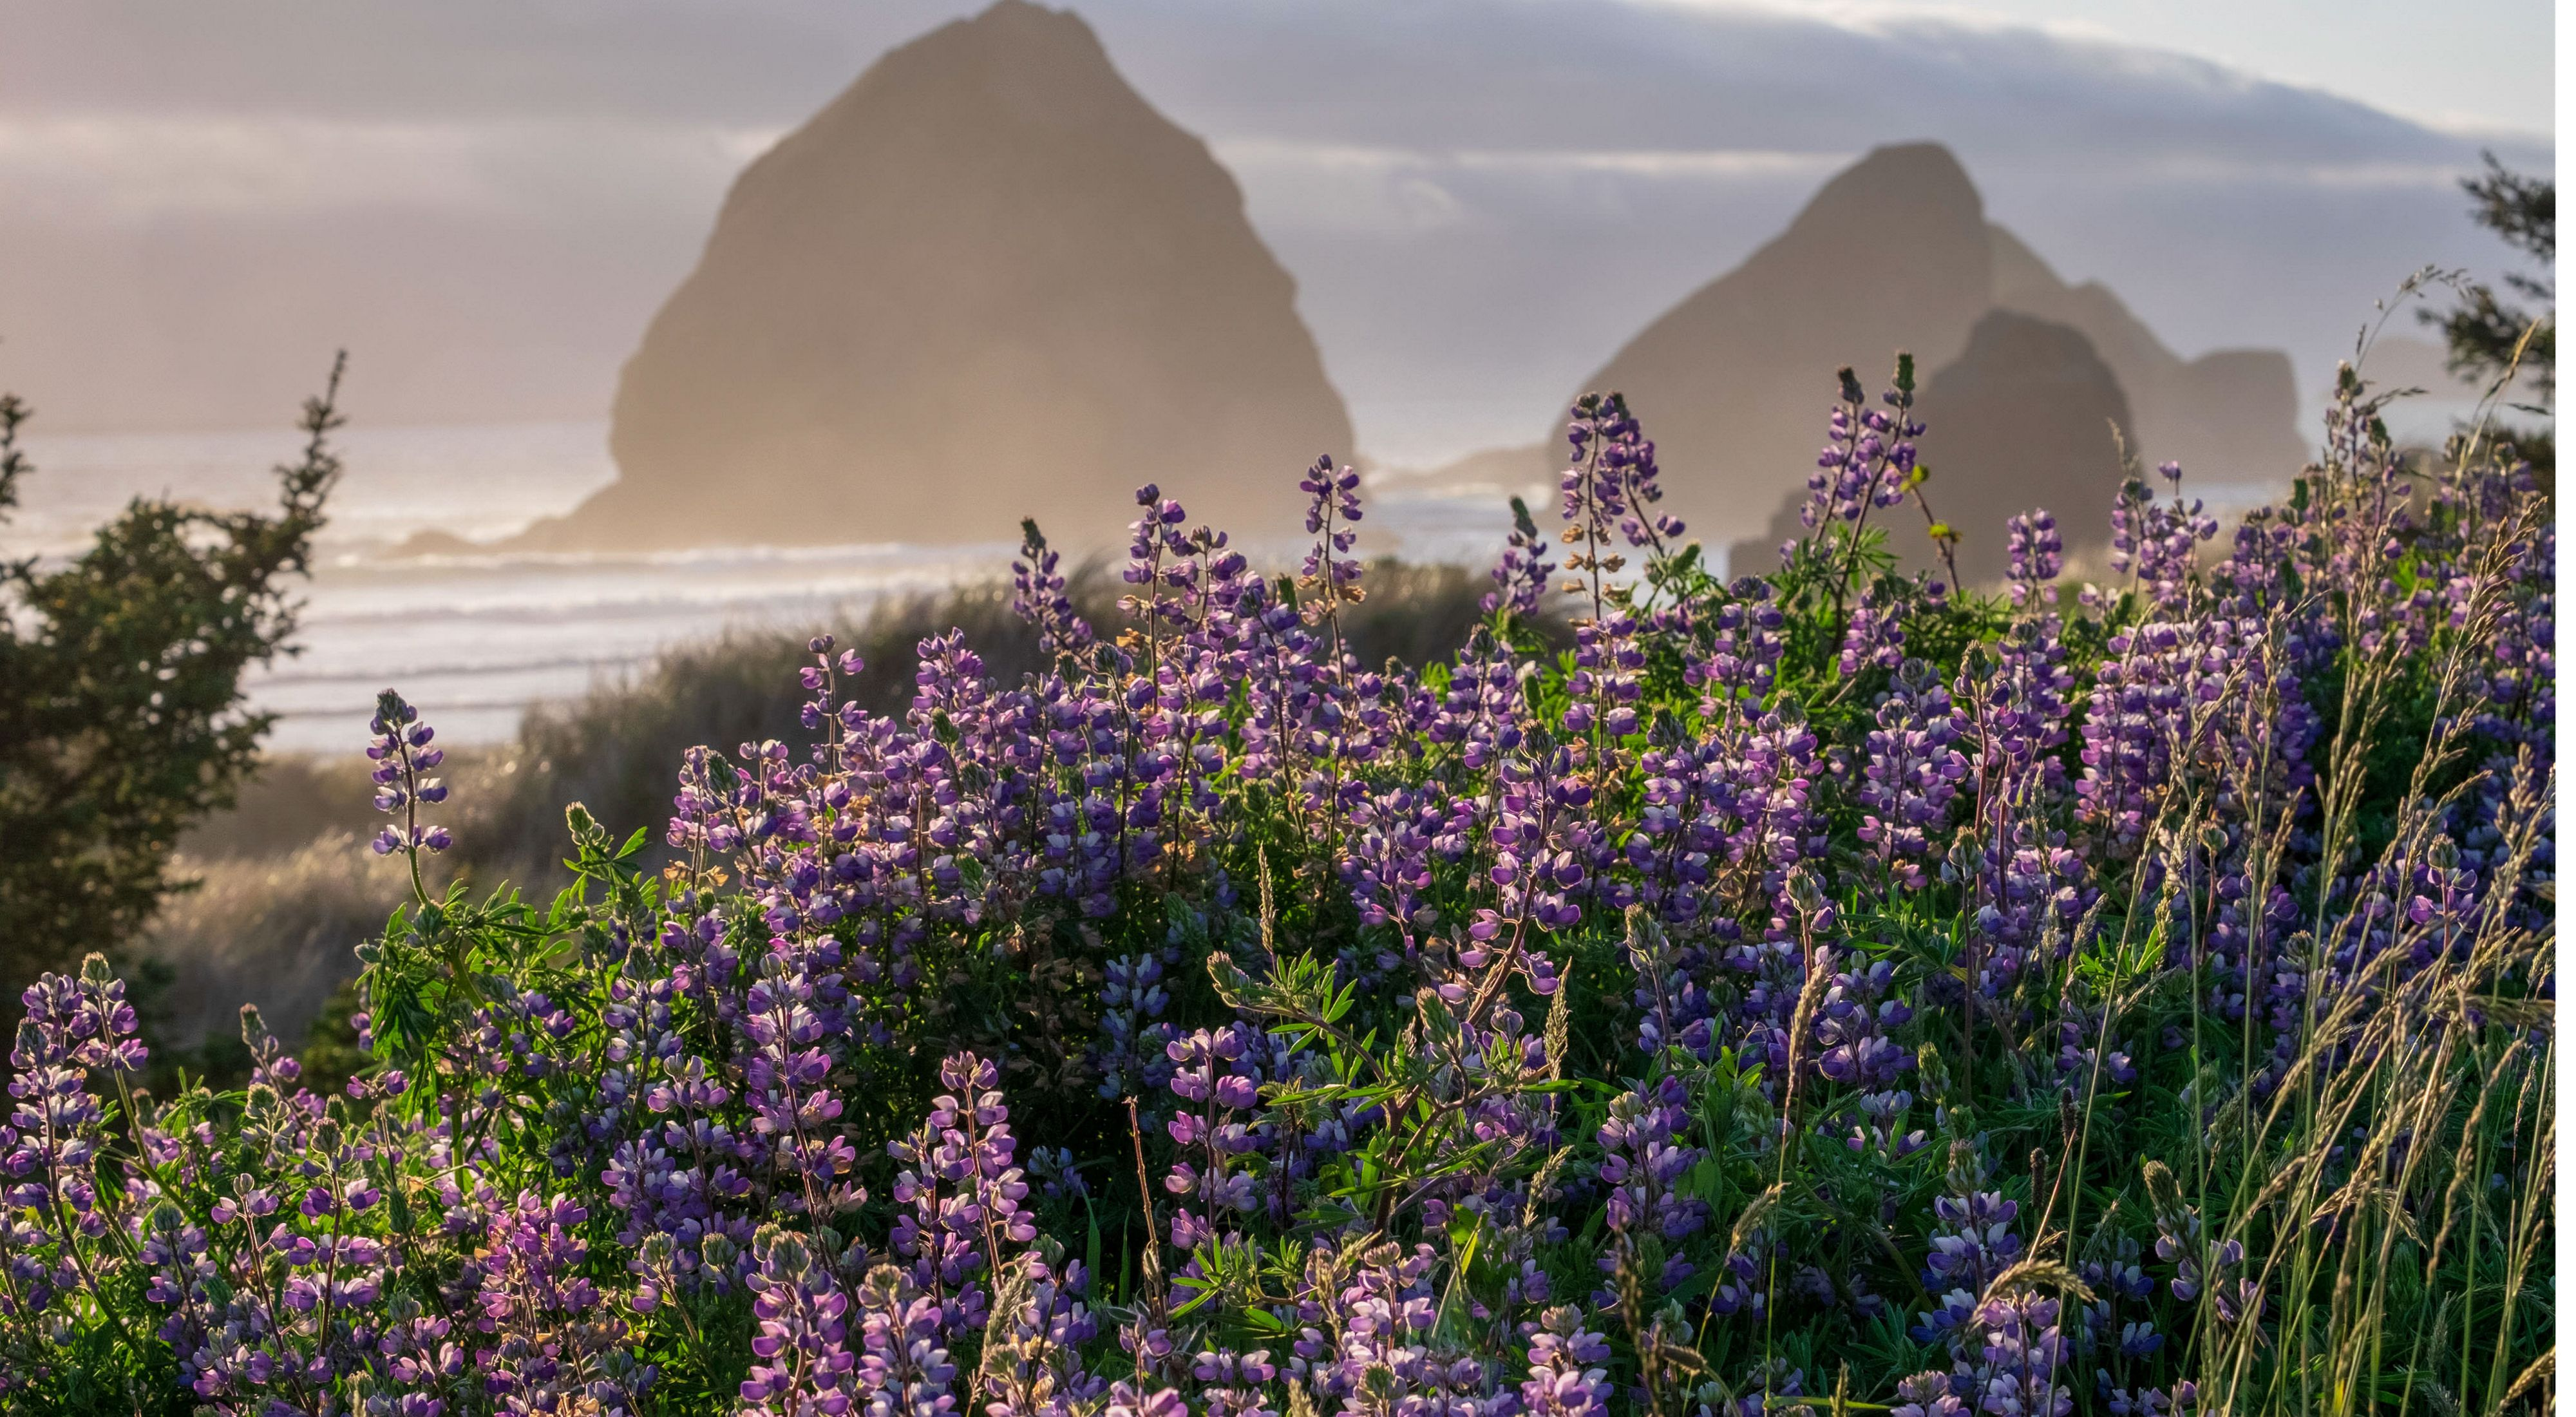 The lupines were in full bloom along the Pacific Highway. The sun was about to set behind that pesky marine layer, but just for an instant, the light on the flowers, the sea stacks and the fog rolling combined for a magical image.